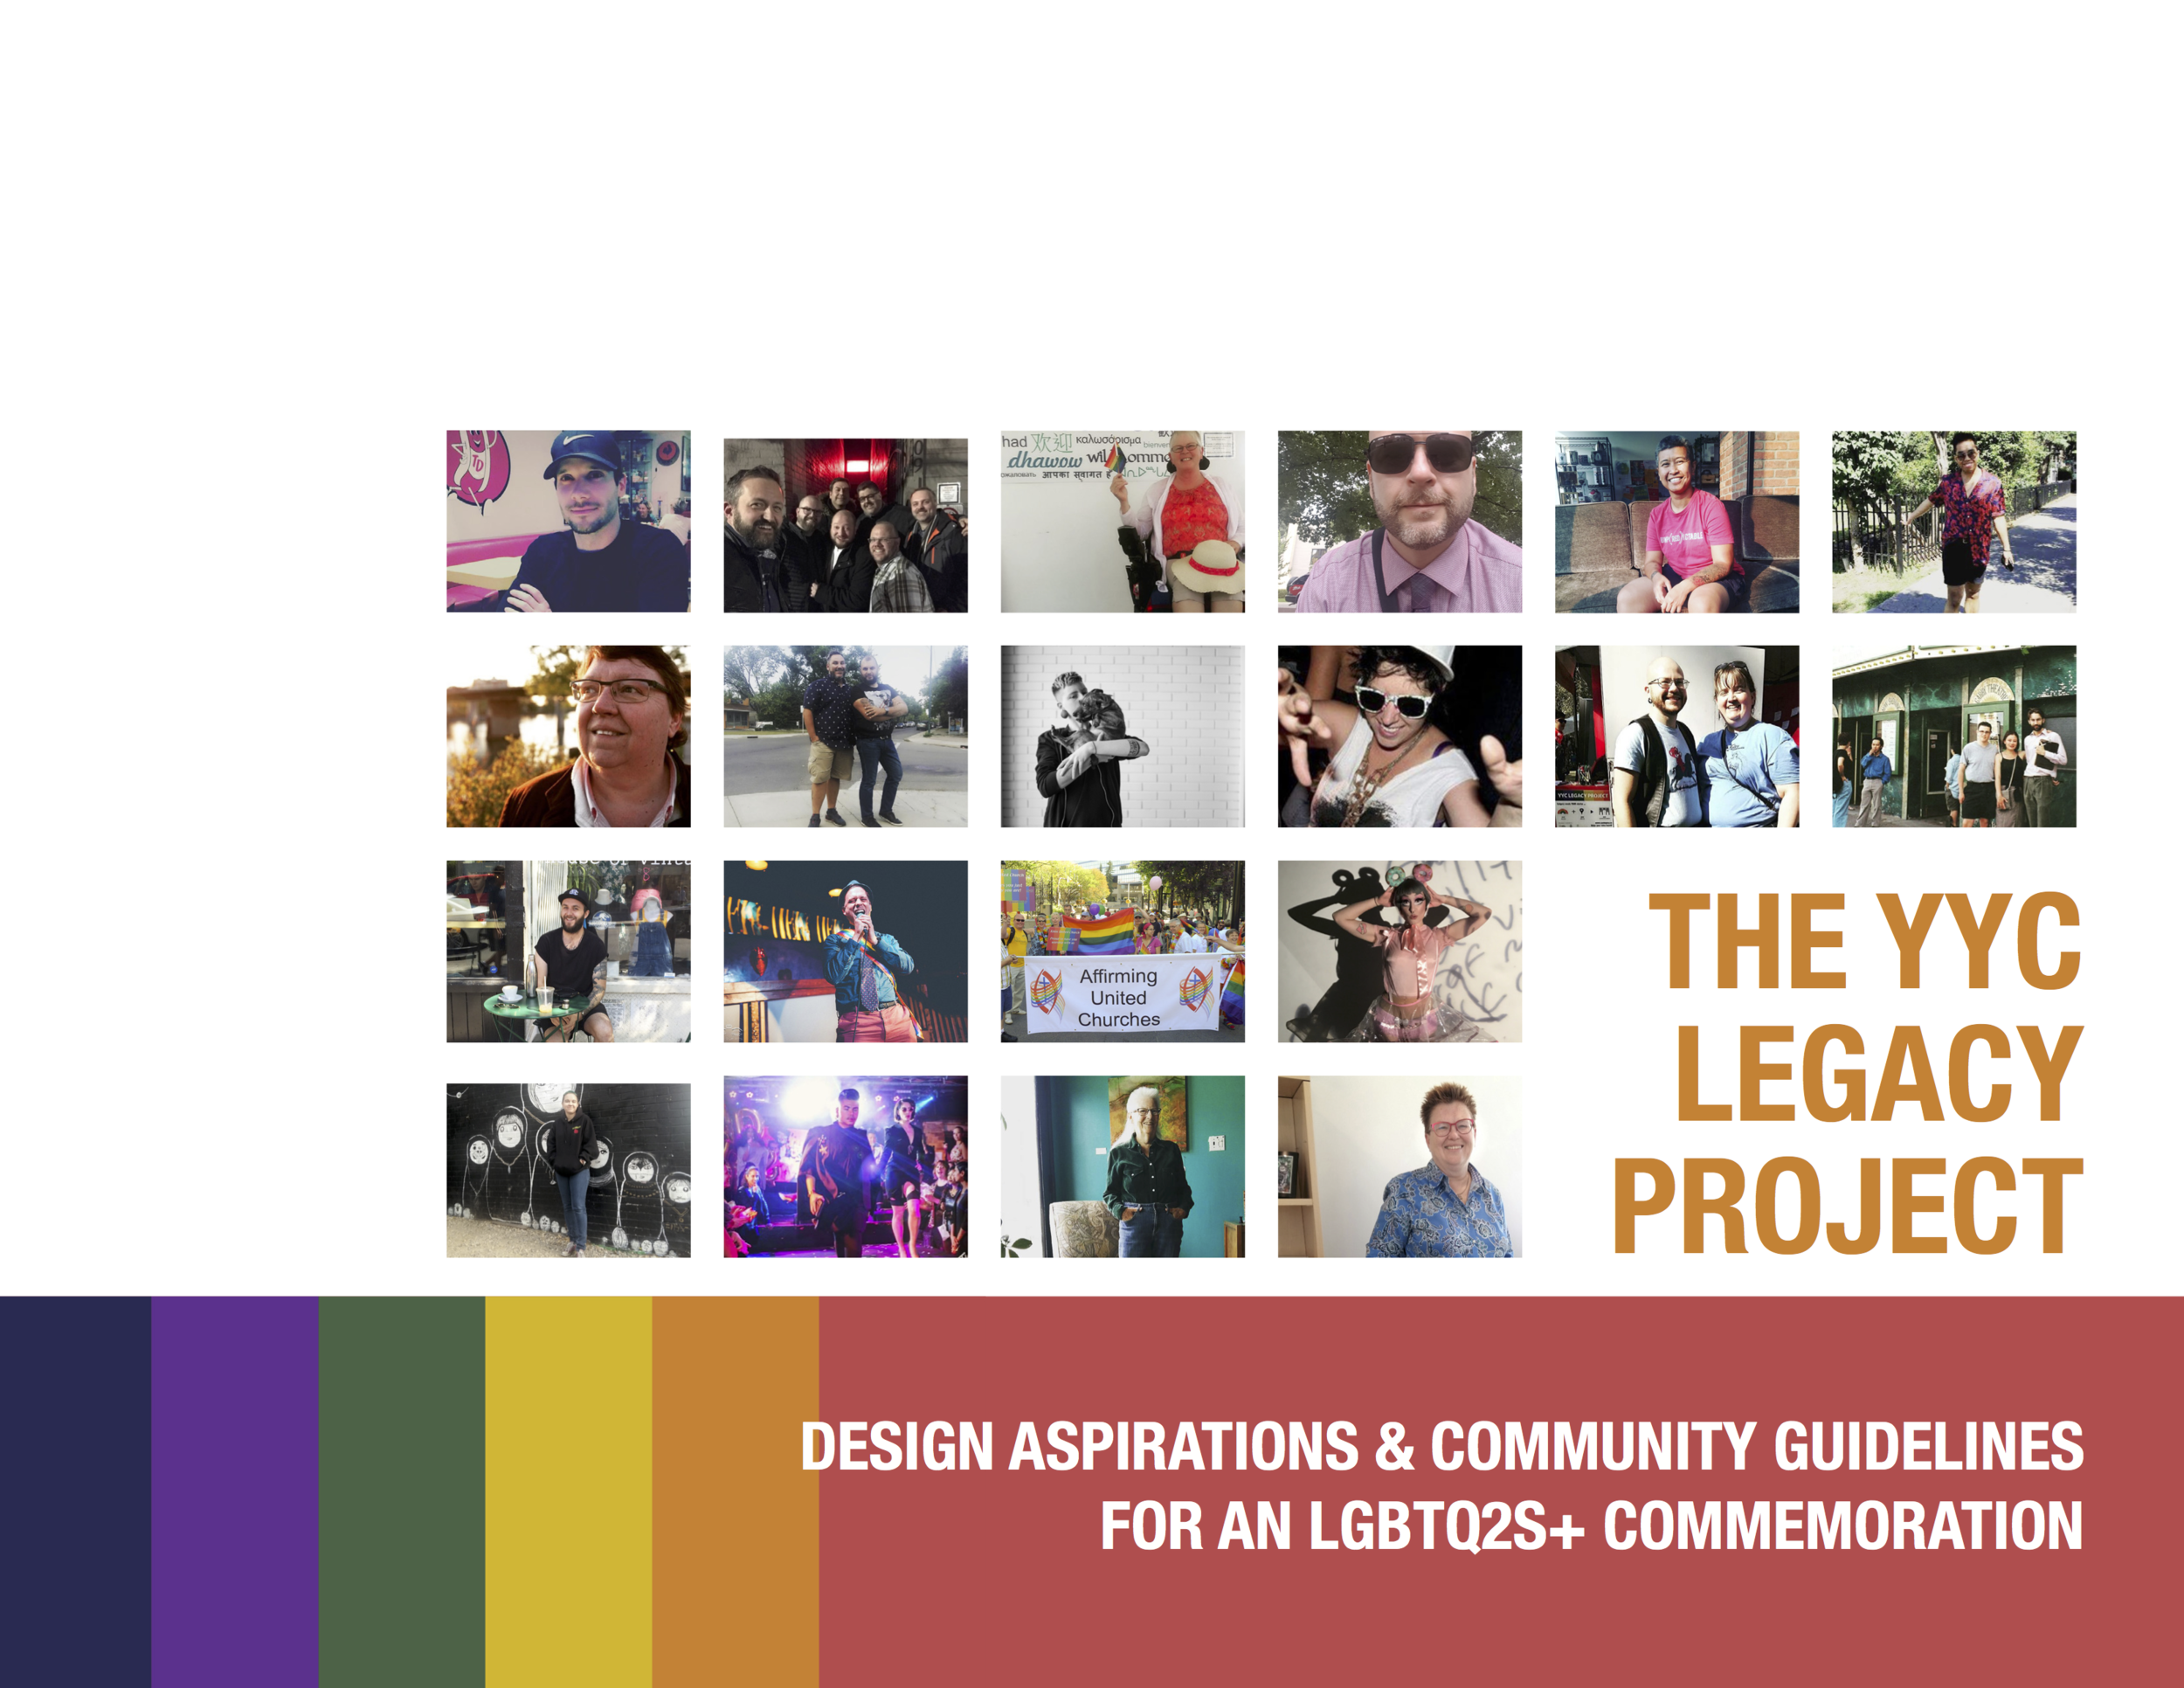 Click on the image above to open the complete PDF and hear what Calgary's LGBTQ2S+ community desires for queer spaces!